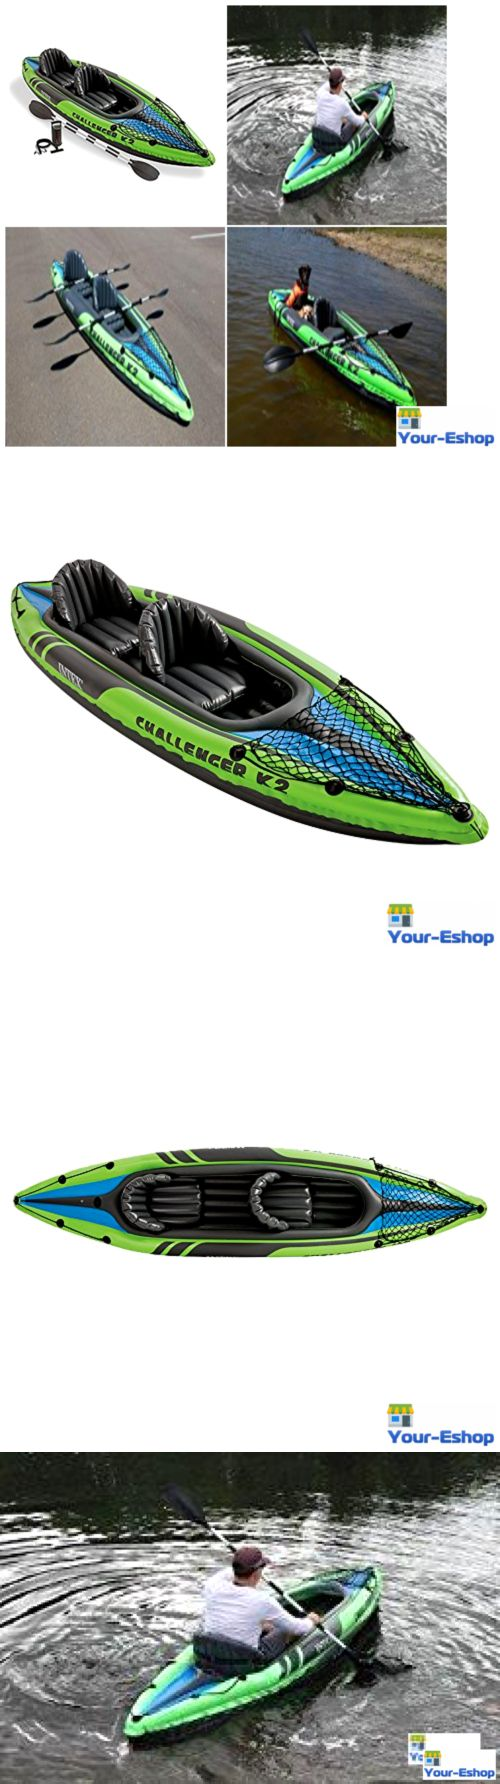 Inflatables 87090: Intex Inflatable Kayak Raft 2 Person Tandem Boat For Fishing Lake River Rafting -> BUY IT NOW ONLY: $124.69 on eBay!